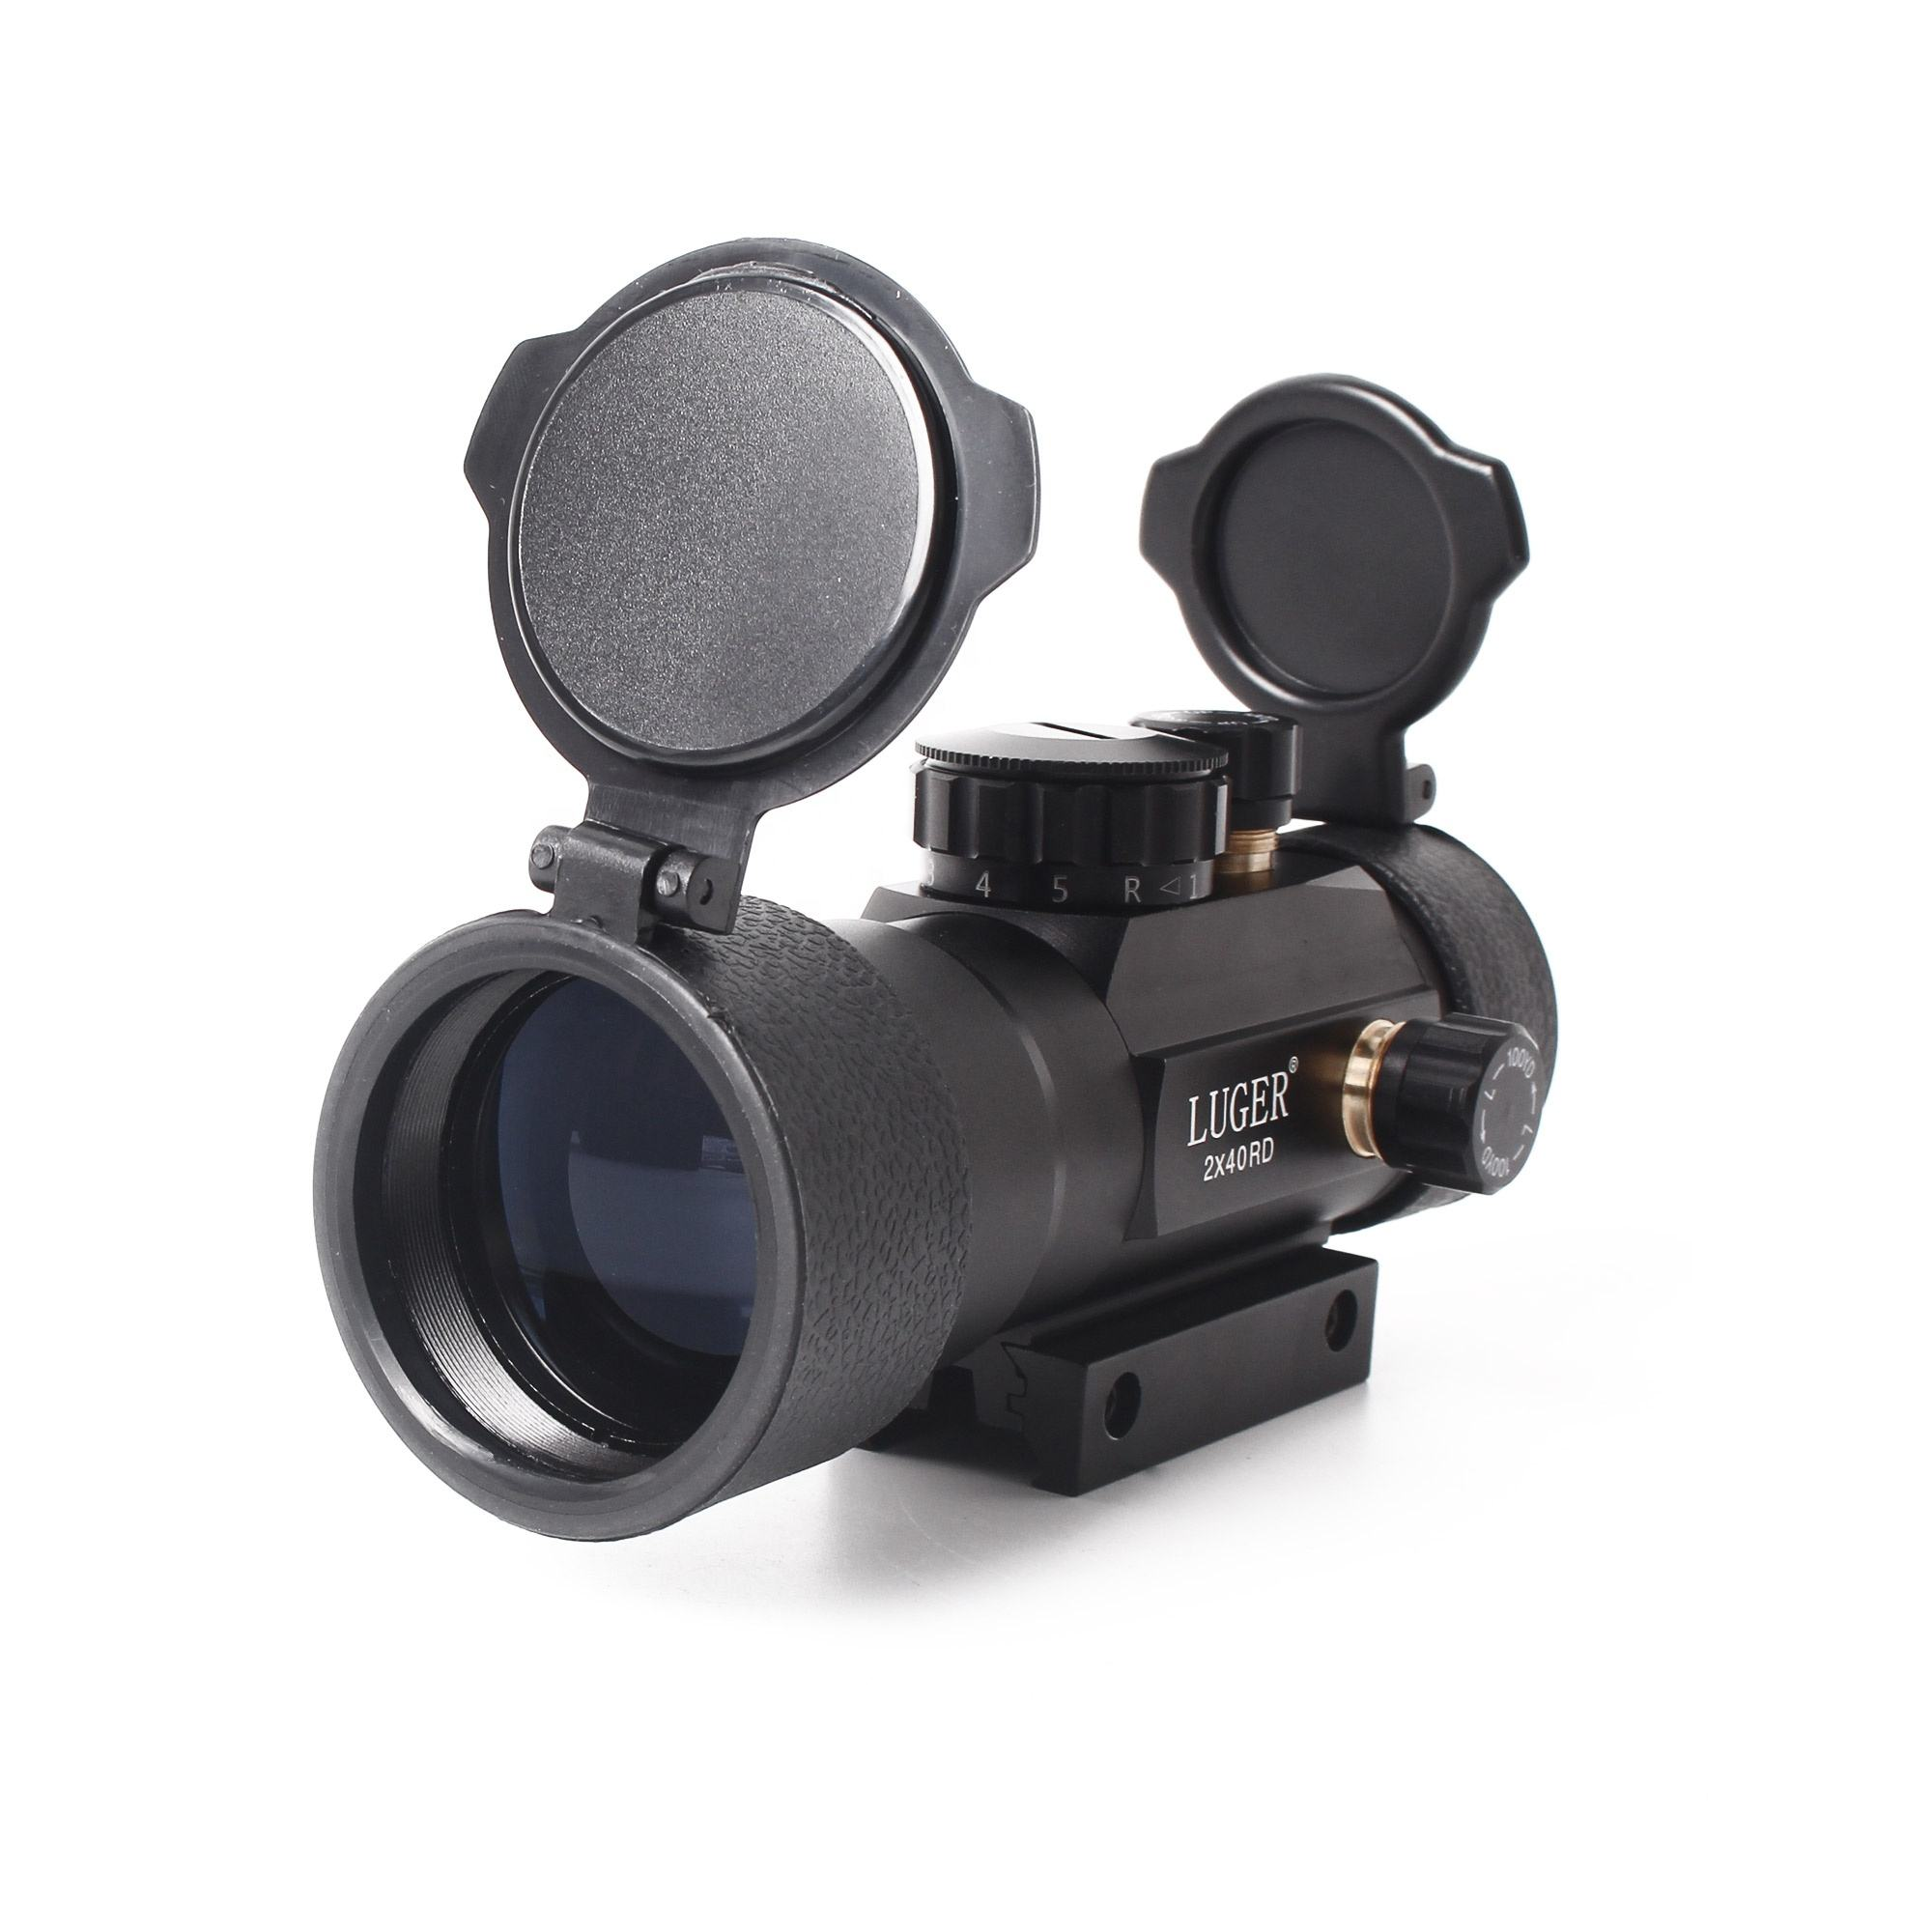 LUGER High Quality 2x40RD Red Green Dot Sight Hunting Scope Find Complete Details about Tactical Optics Riflescope